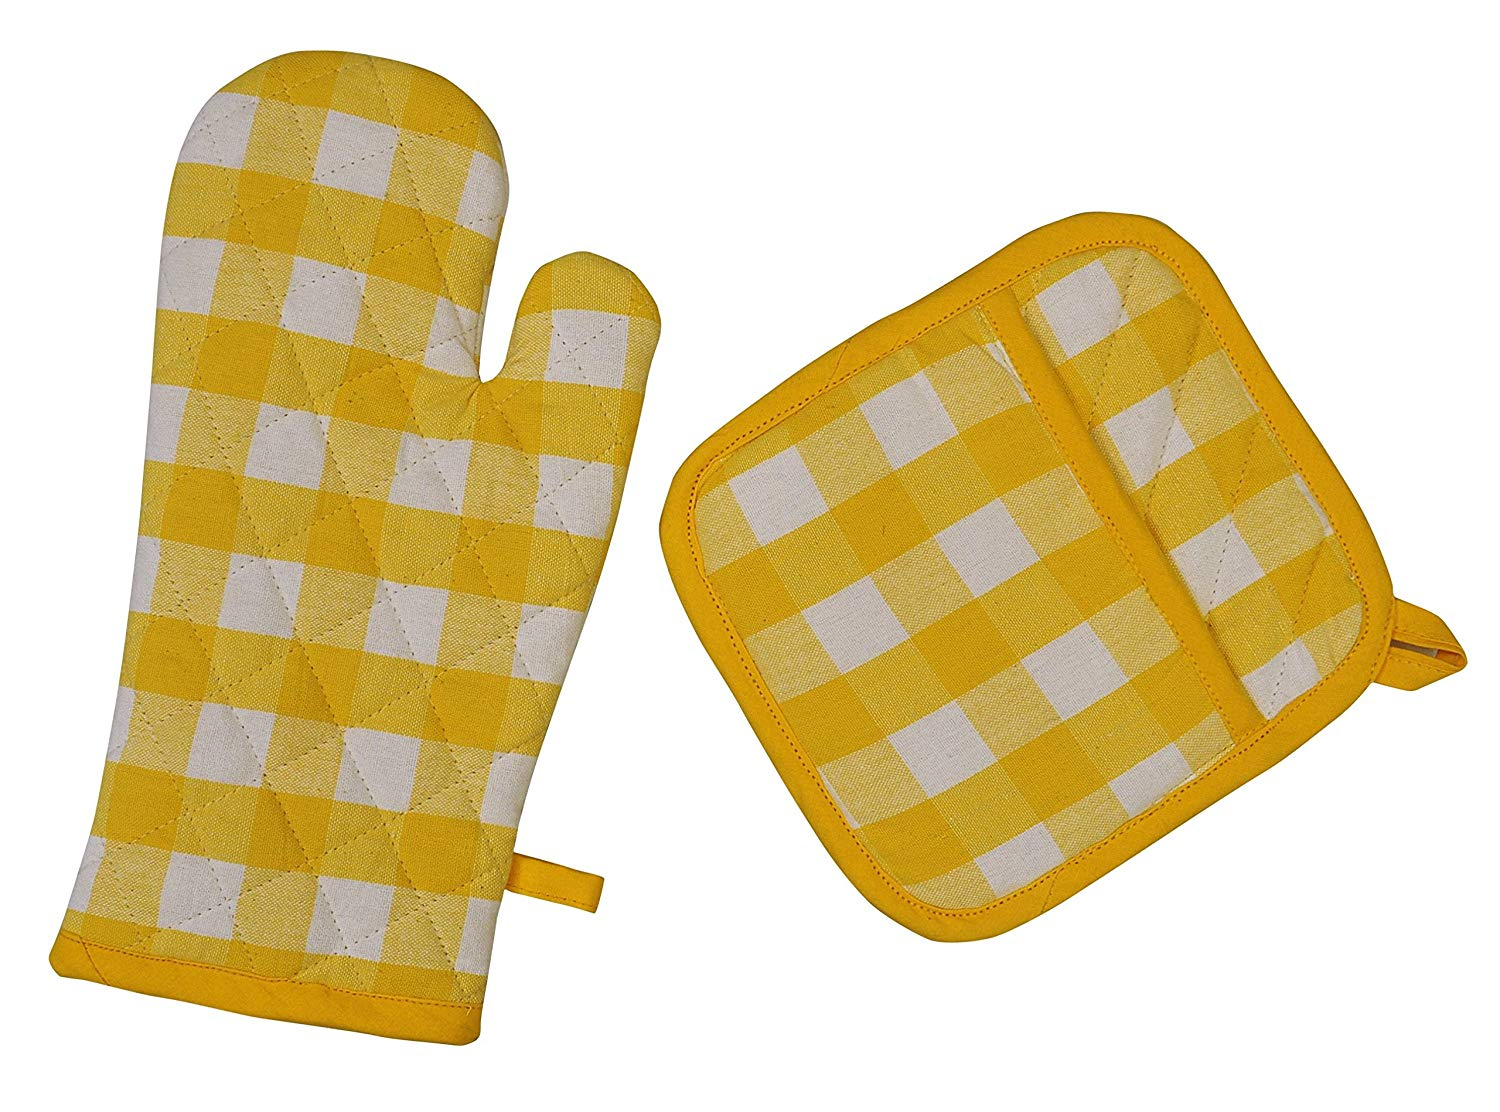 Yourtablecloth Set of Checkered Oven Mitt and Pot Holder or Oven Gloves-100% Cotton, Heat Resistance, Superior Protection & Comfort–Gingham design-Machine Washable Yellow and White